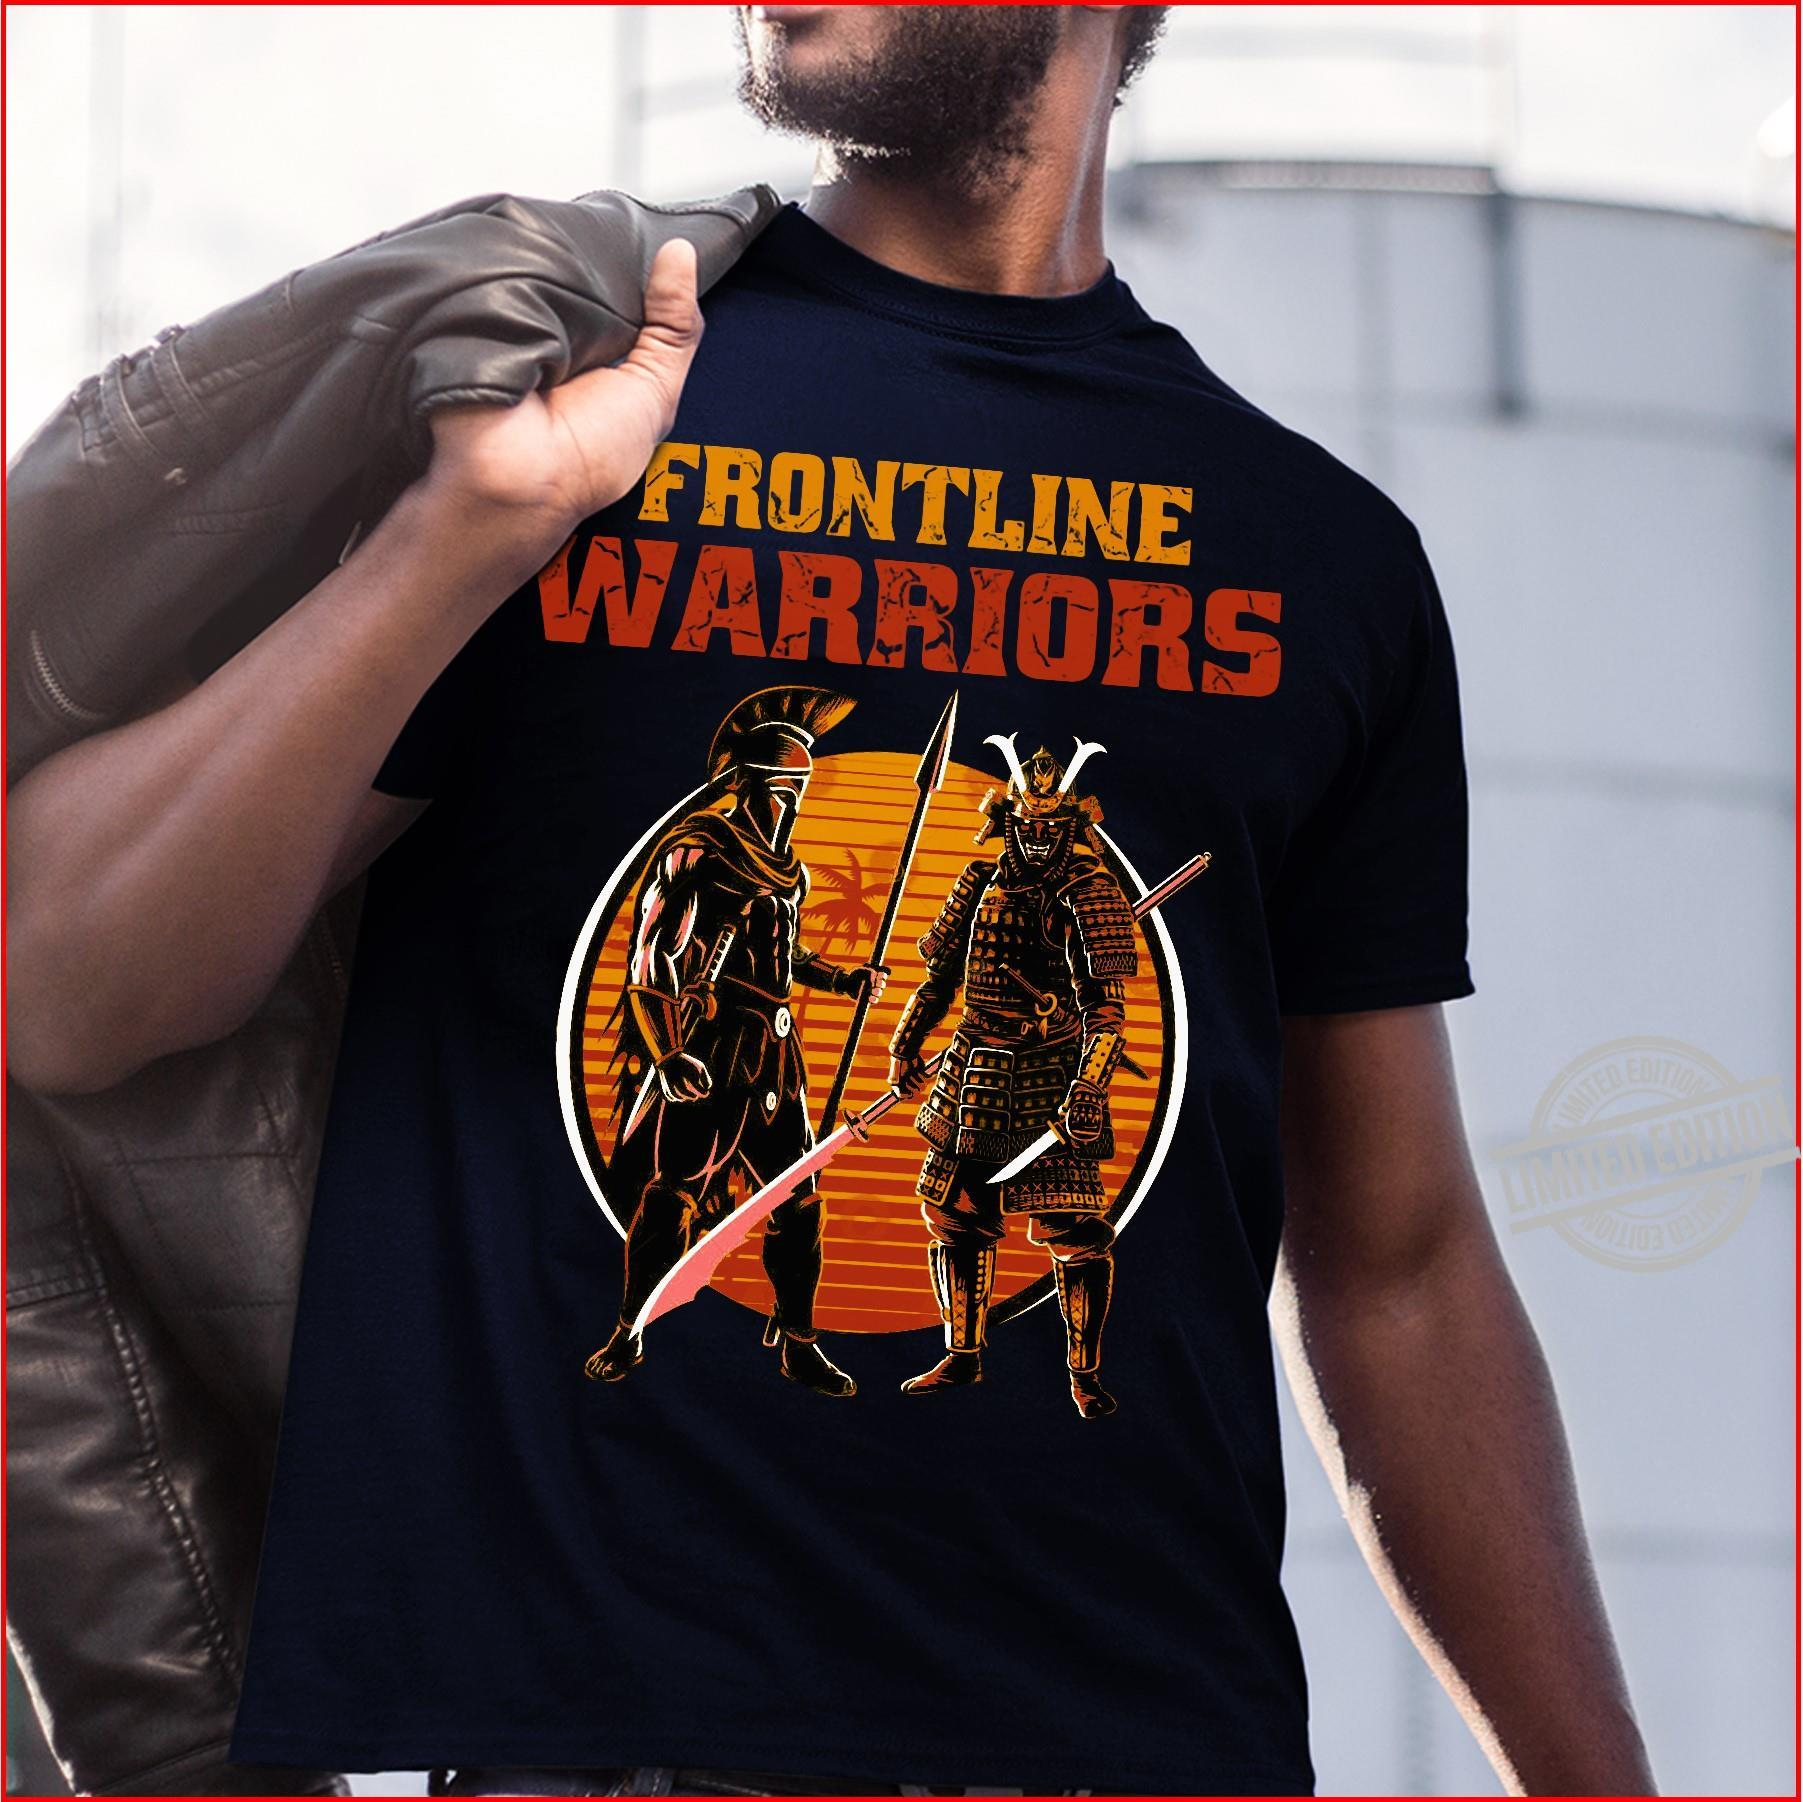 Frontline Warriors Shirt